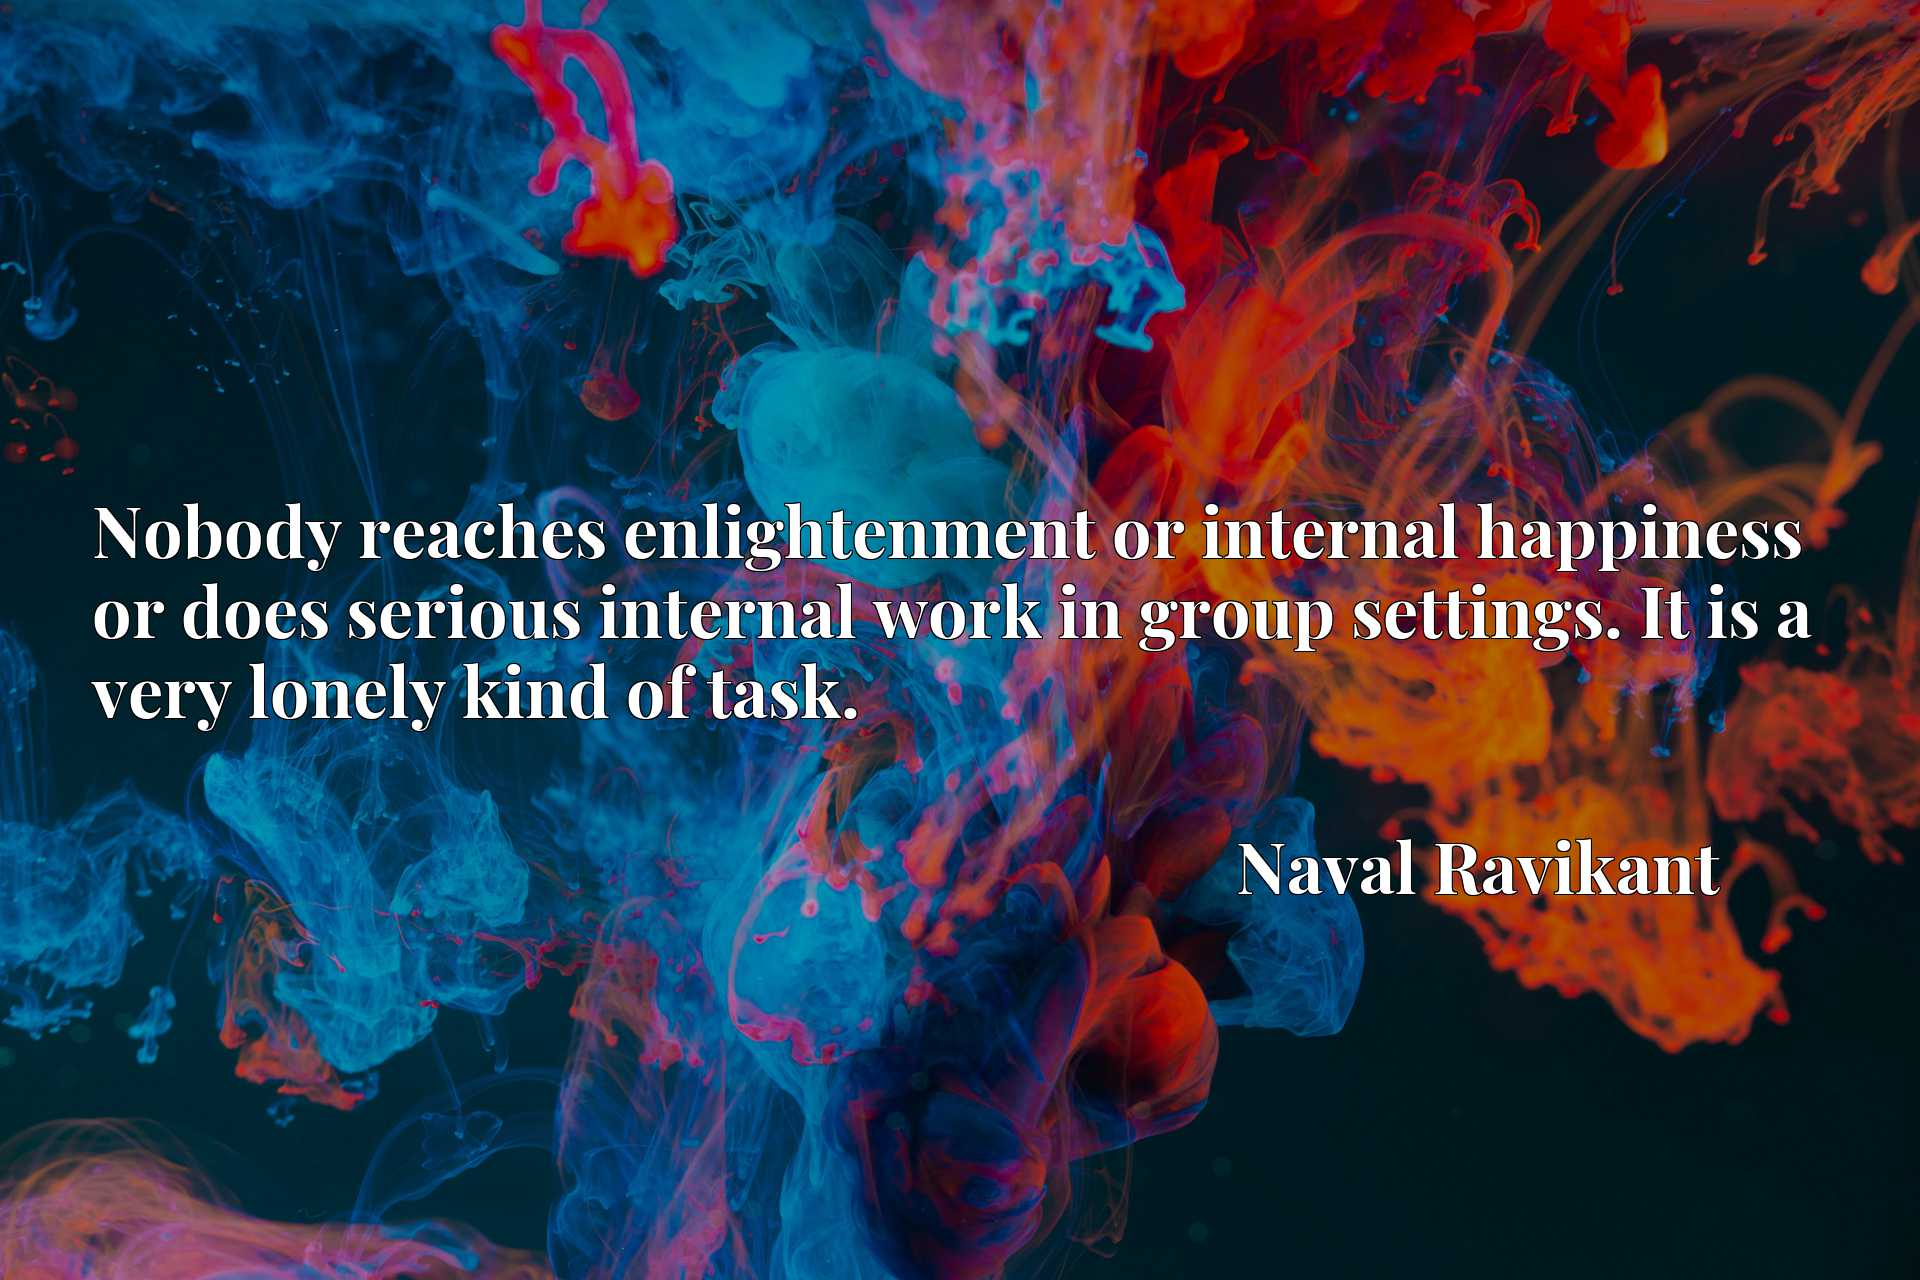 Nobody reaches enlightenment or internal happiness or does serious internal work in group settings. It is a very lonely kind of task.